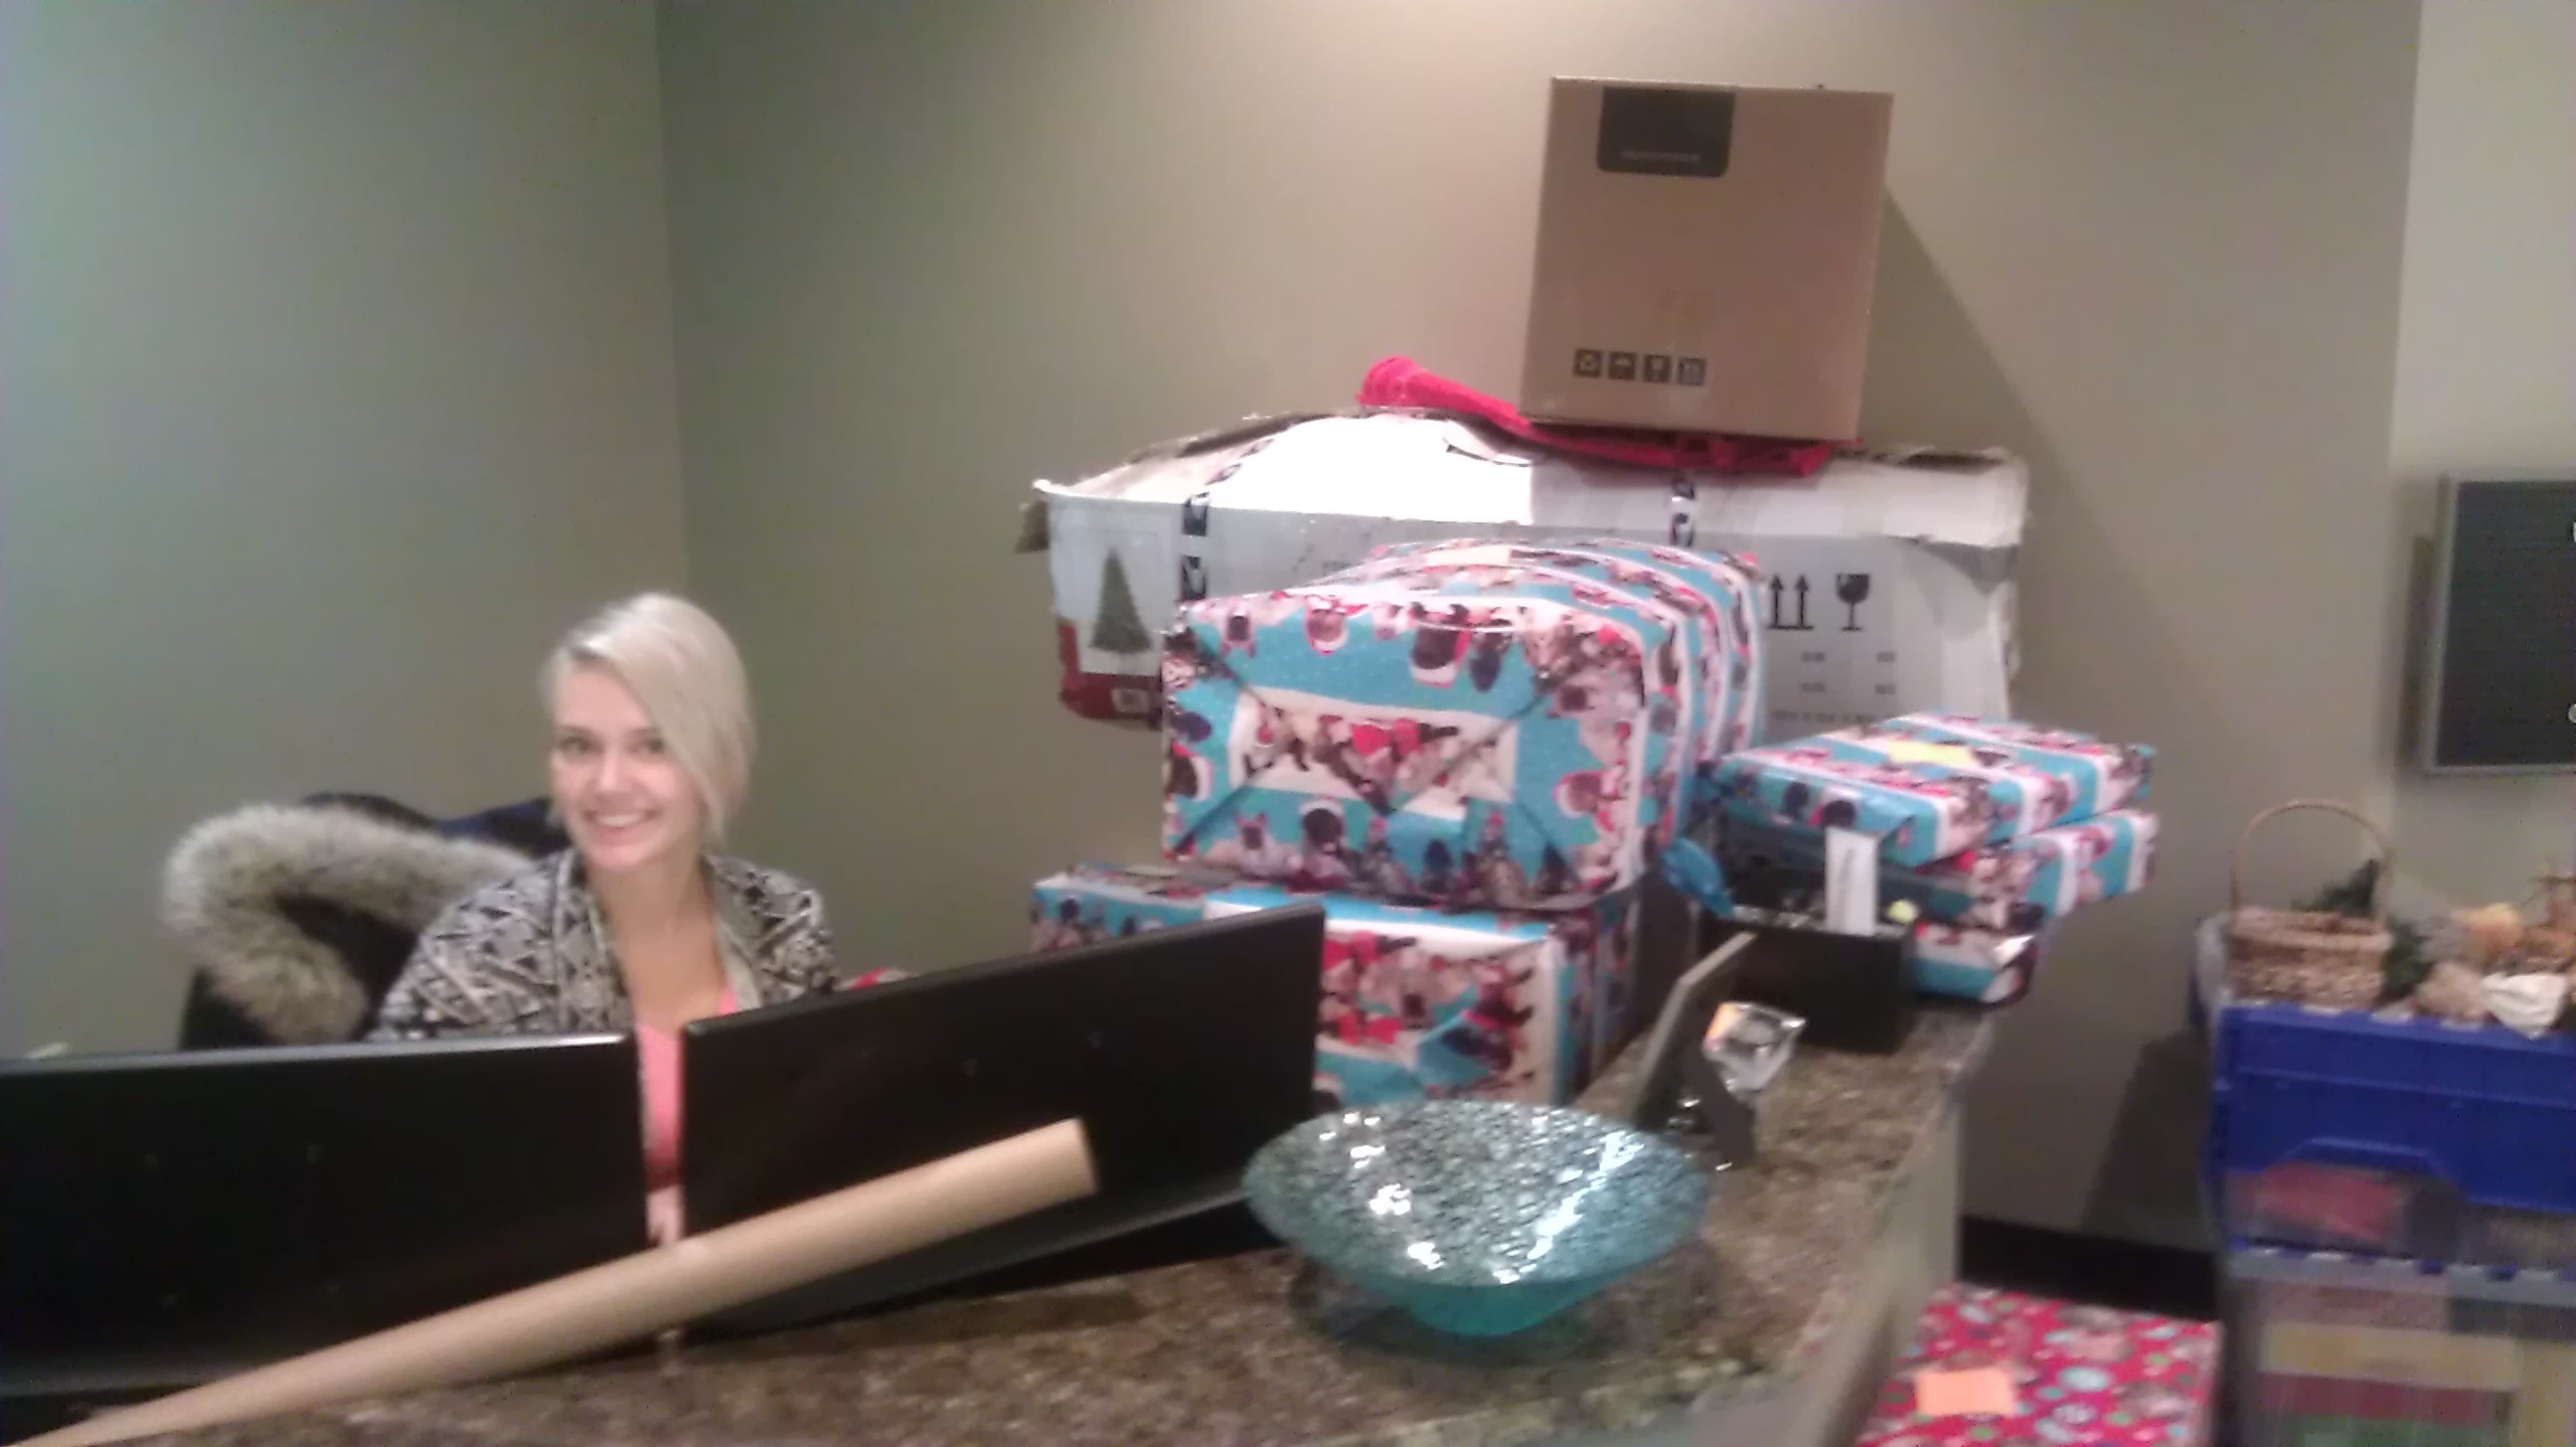 DCS Joins Community House Network This Holiday Season to Bring Joy to Those in Need